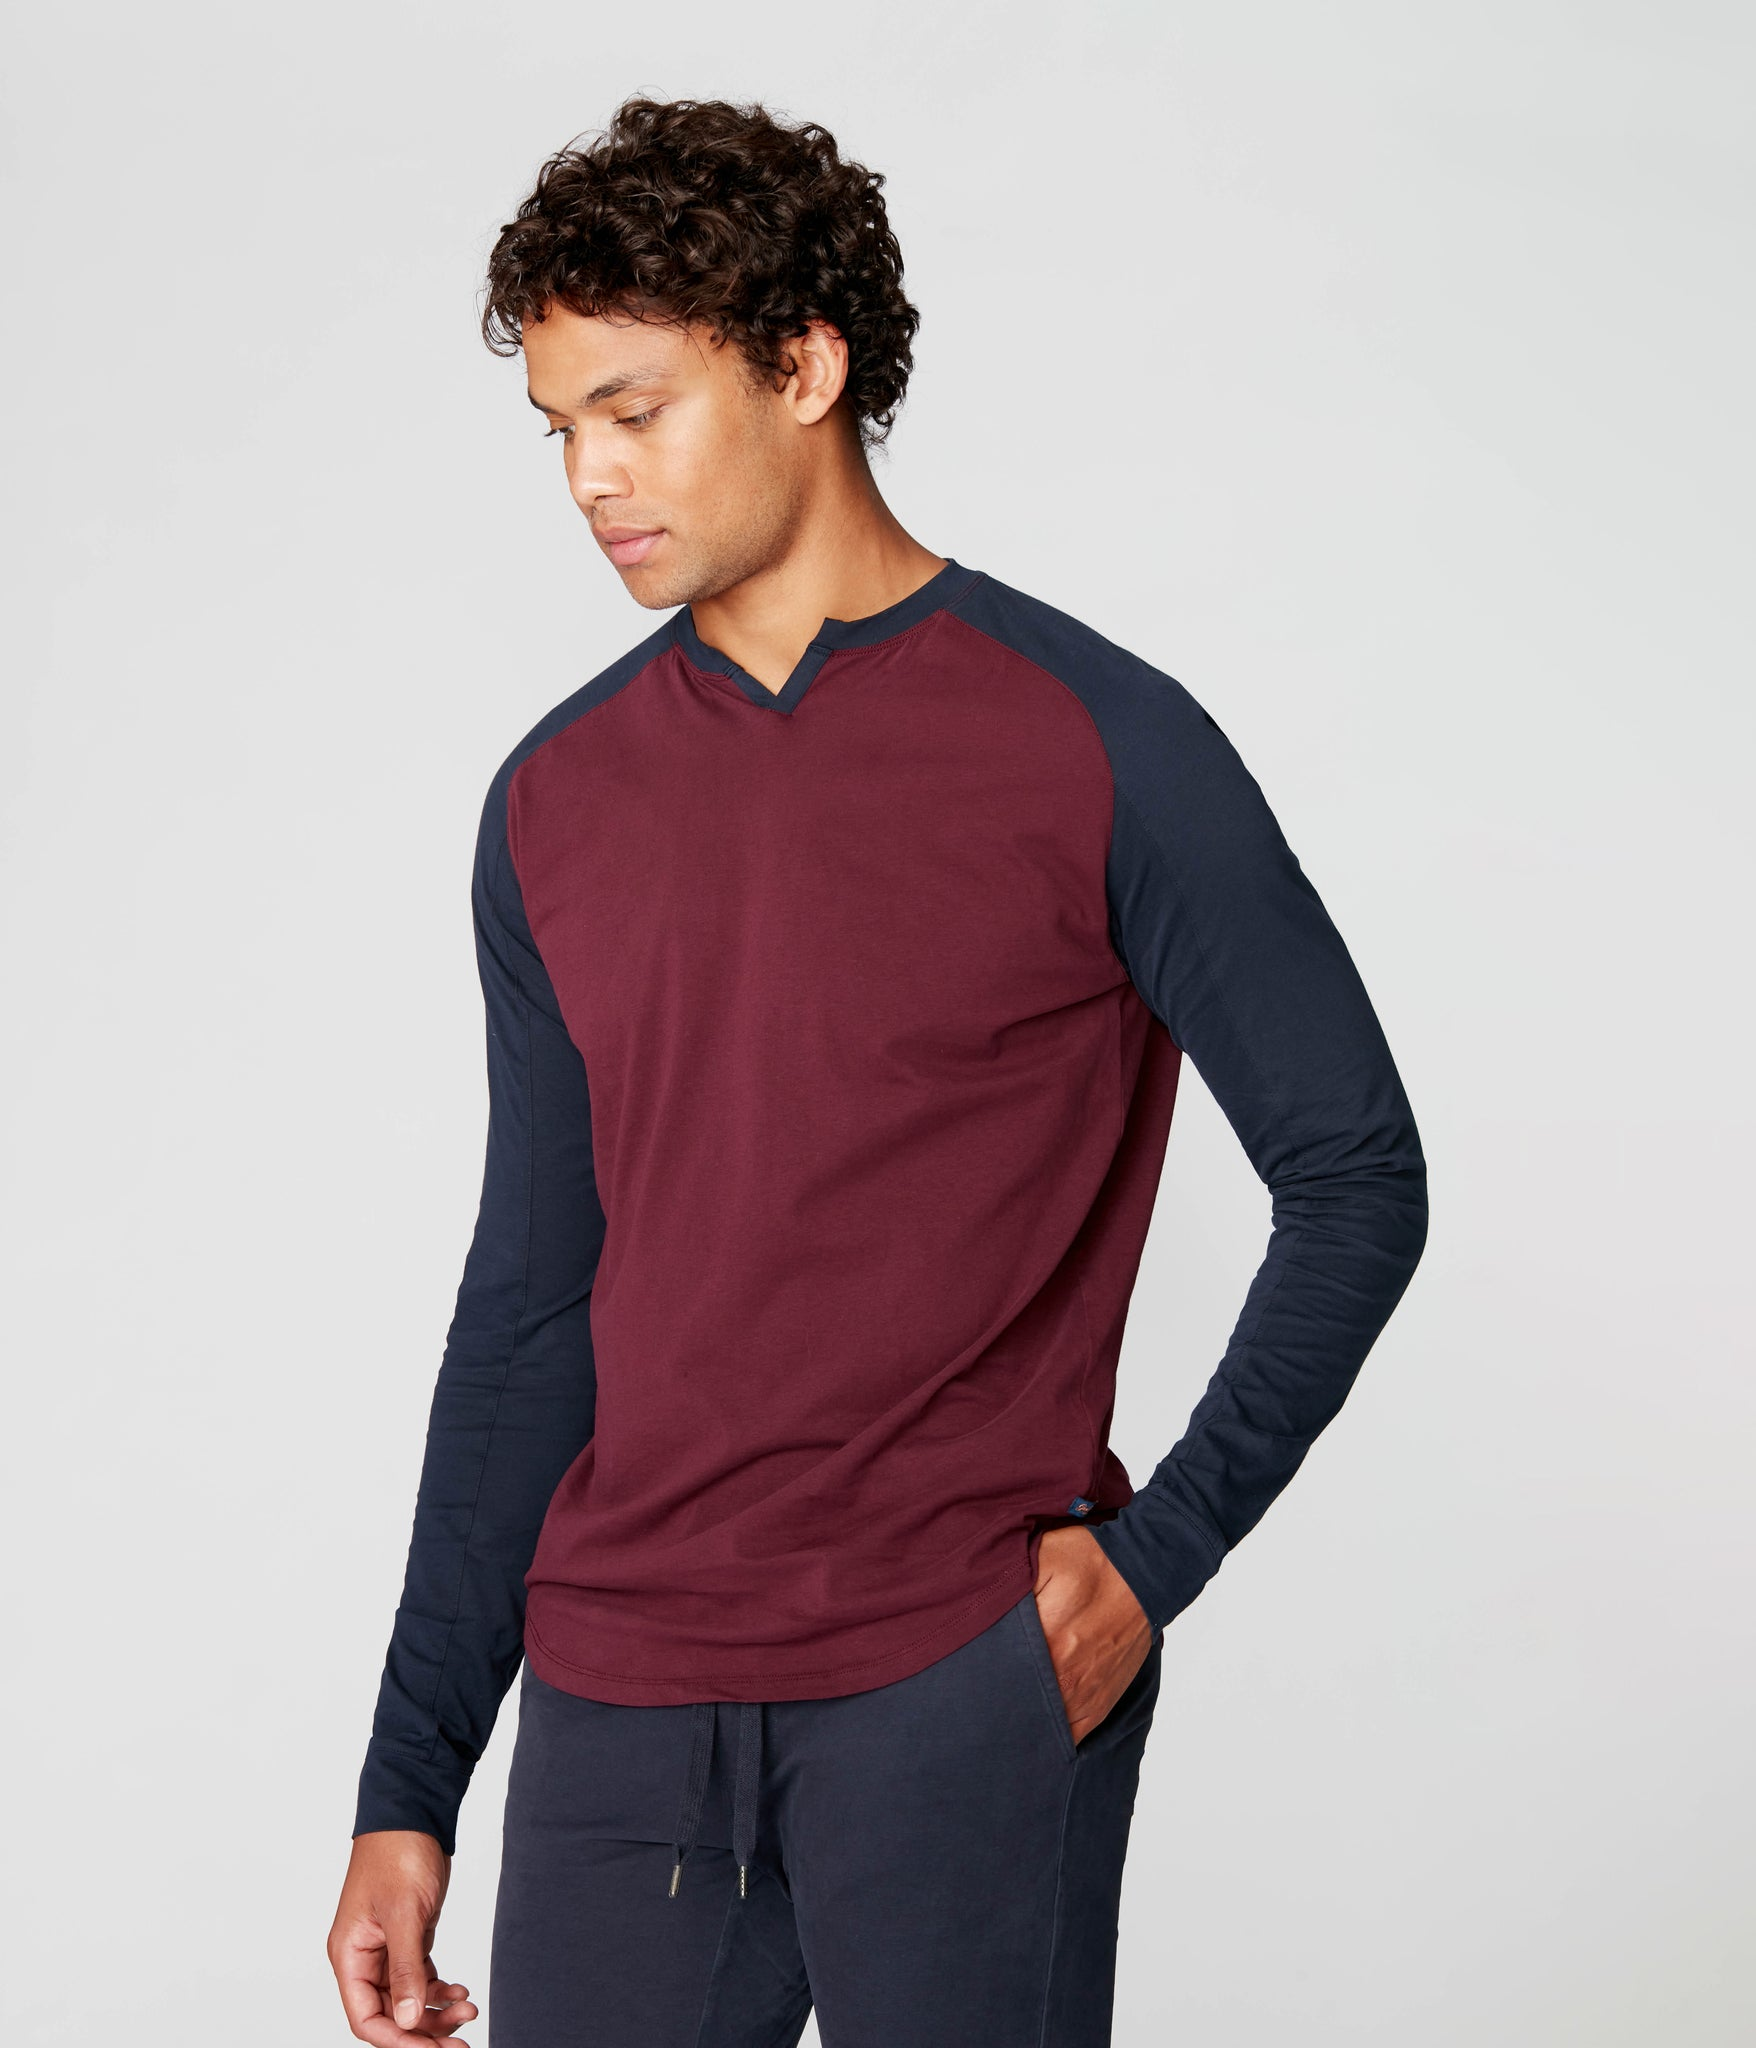 Baseball V-Notch in Premium Cotton Jersey - Wine/Sky Captain